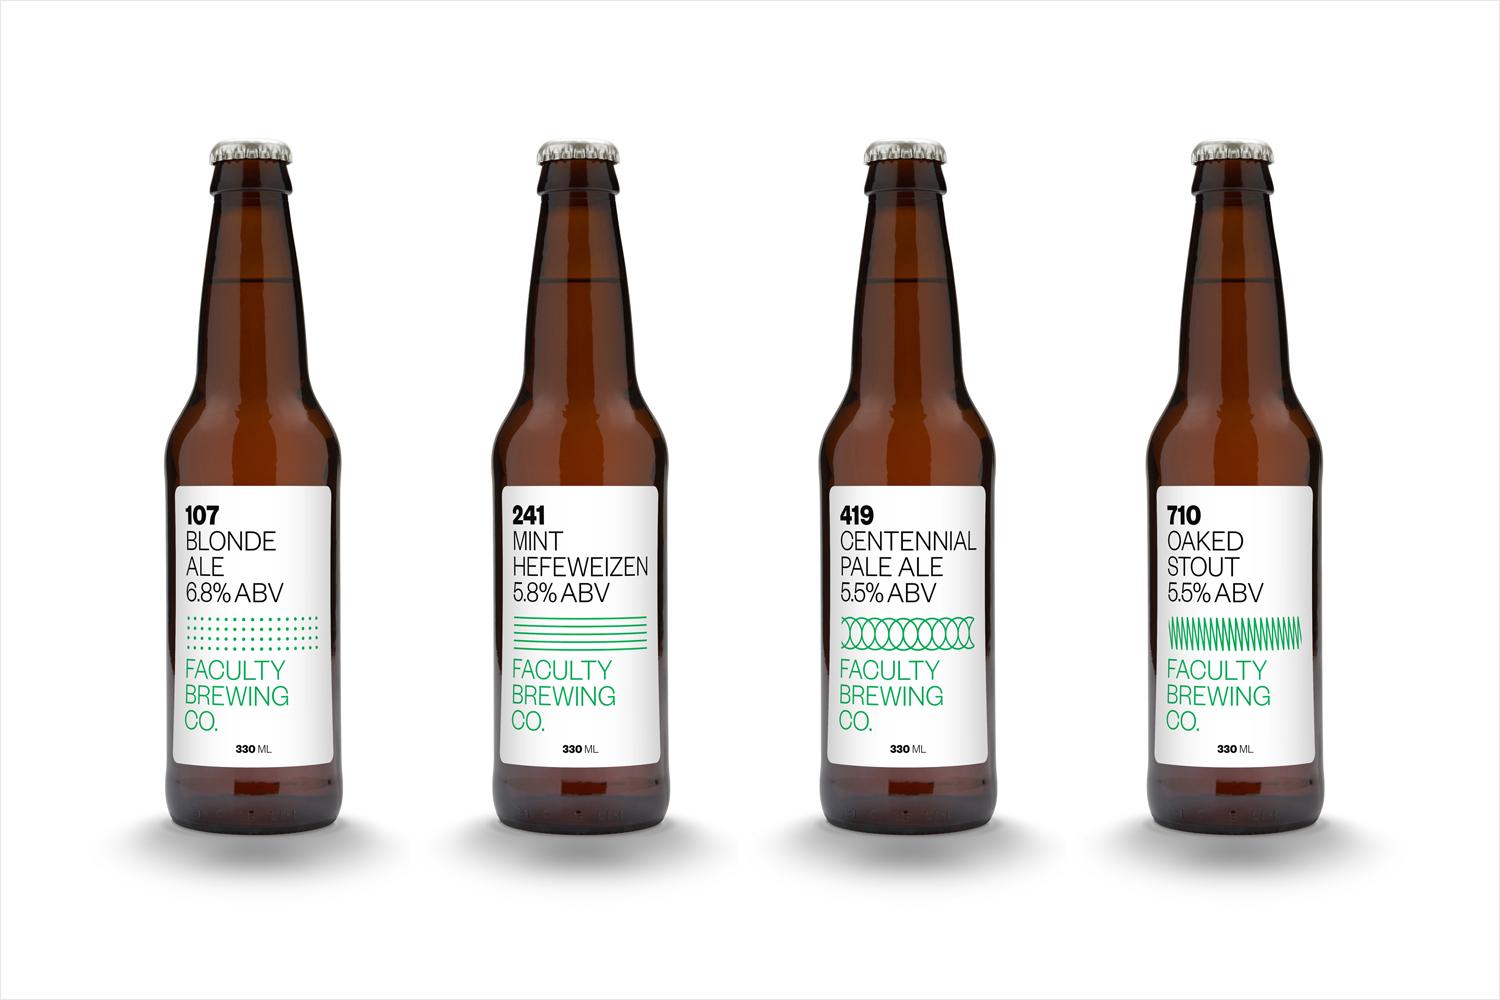 Craft beer branding and packaging by Canadian graphic design studio Post Projects for Faculty Brewing Co.